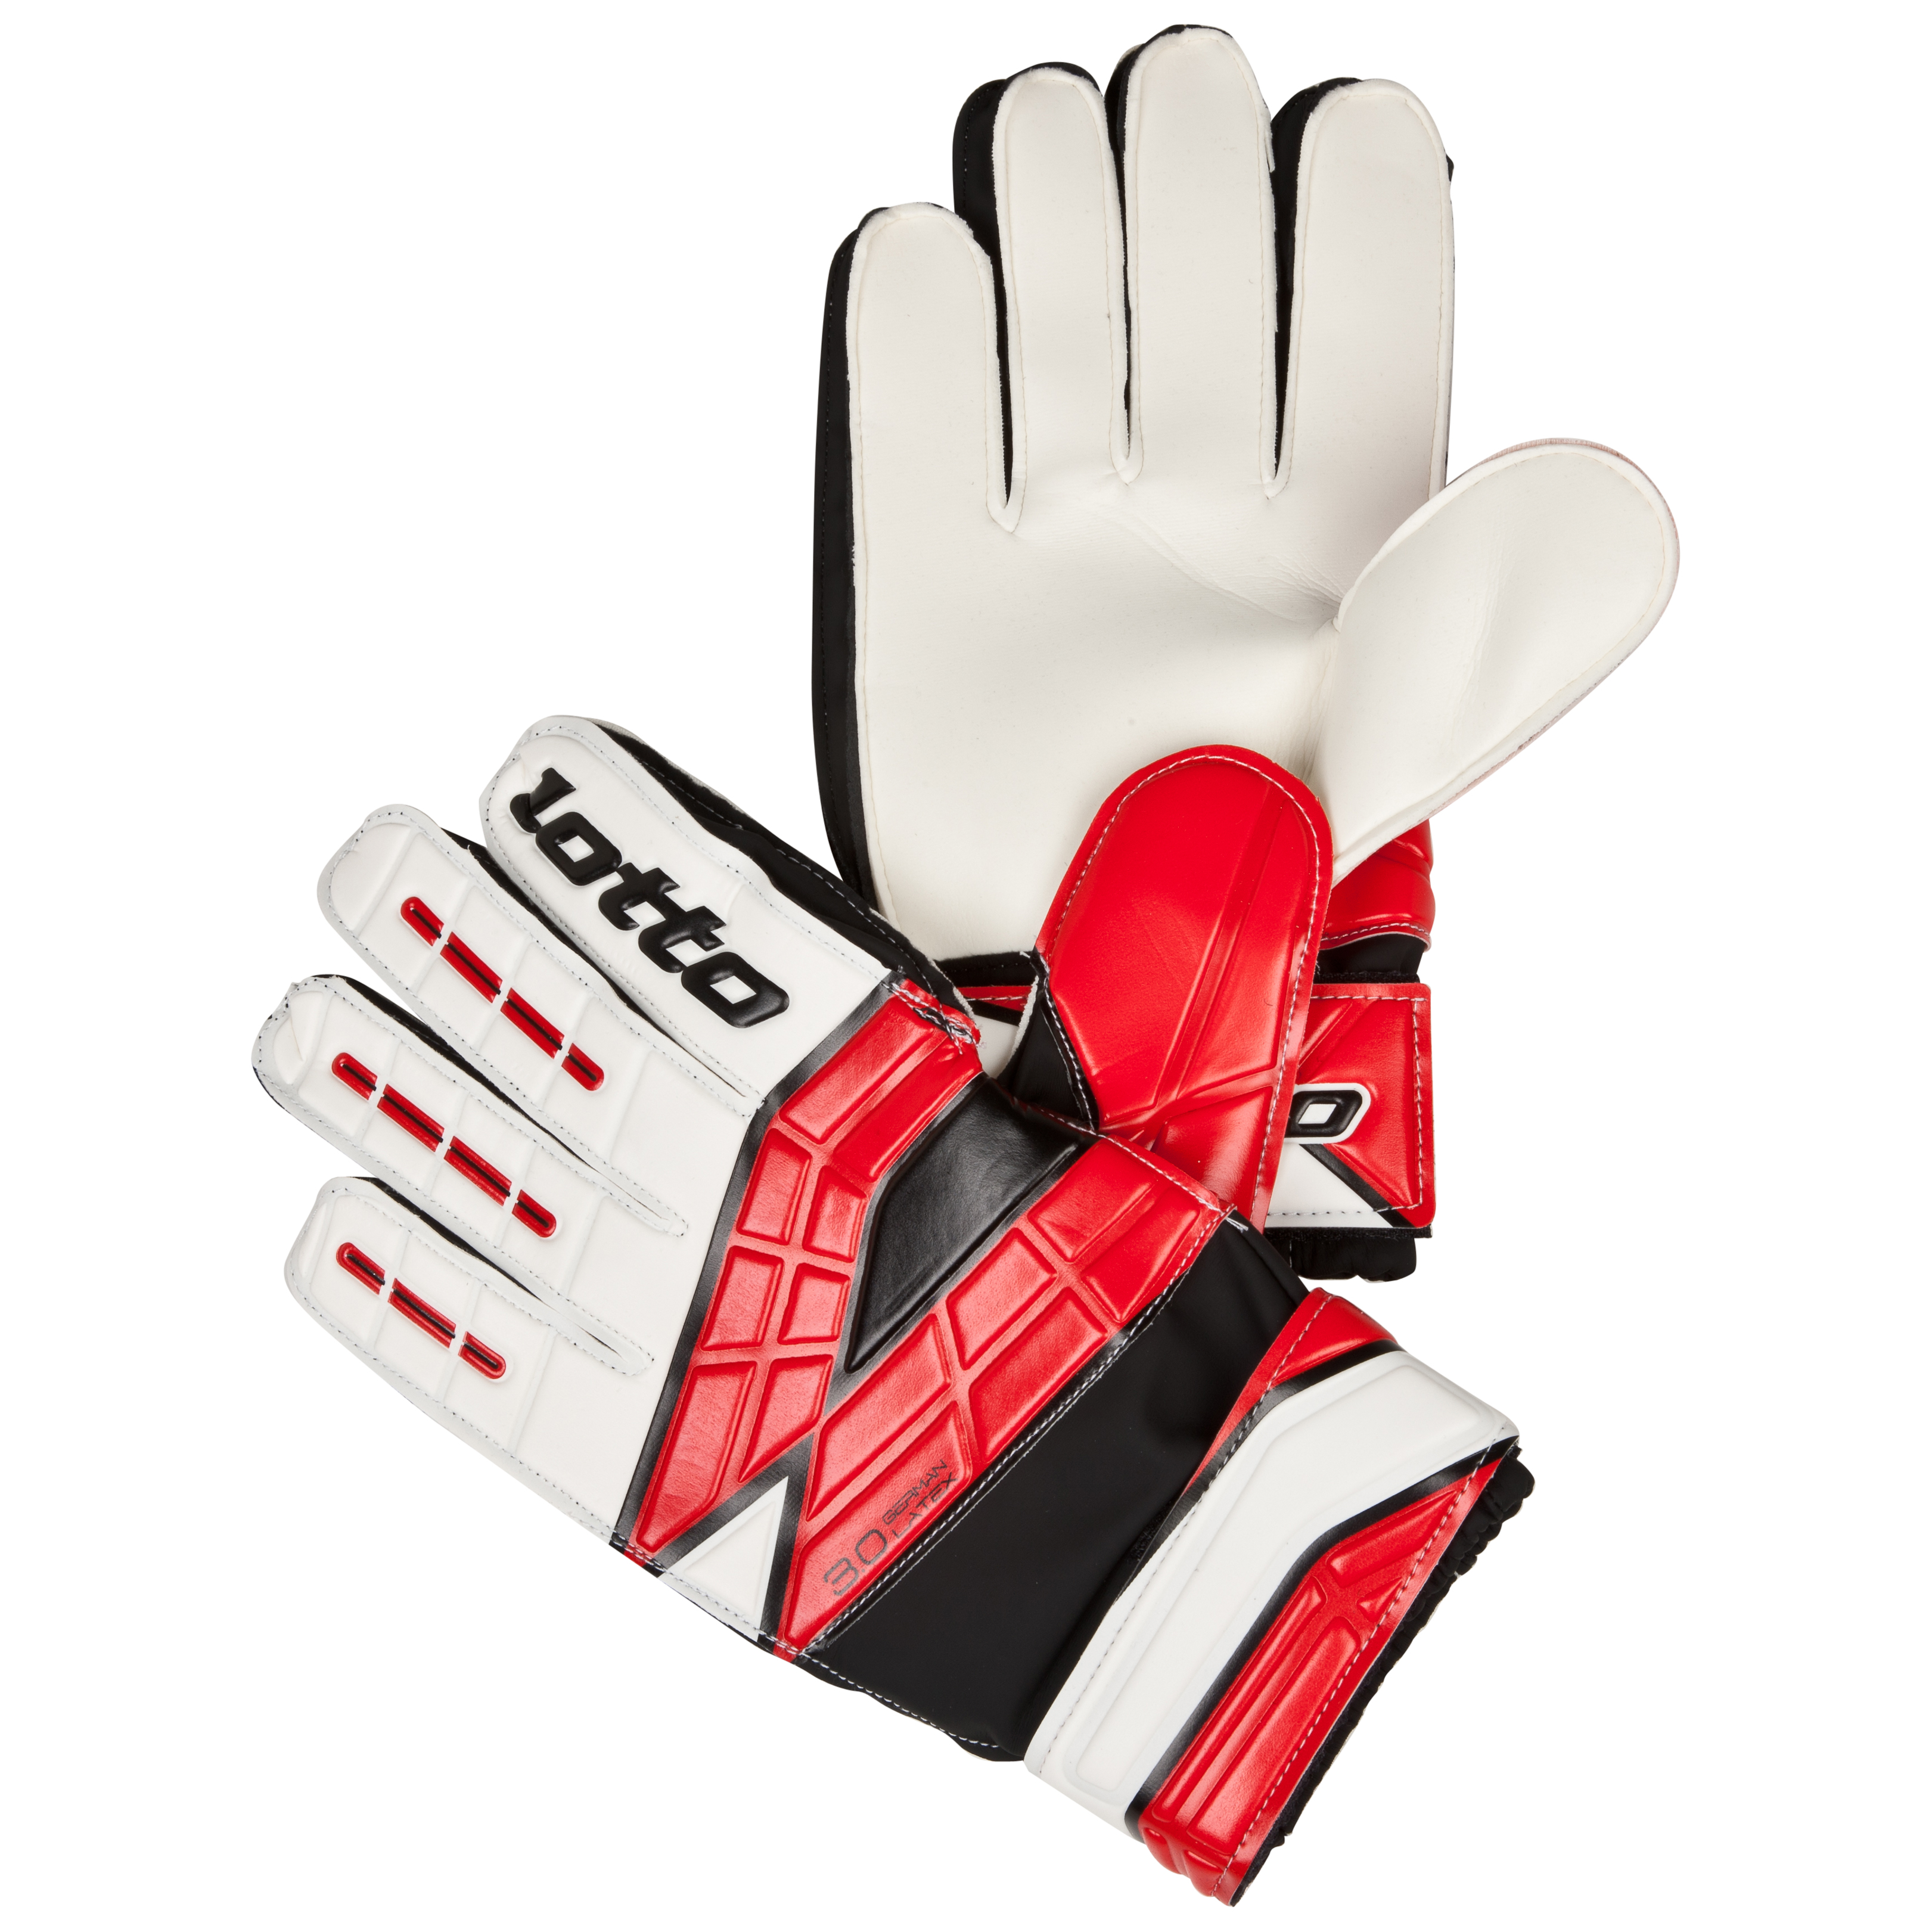 Lotto Gripster GK800 II Goalkeeper Gloves-White/Risk Red